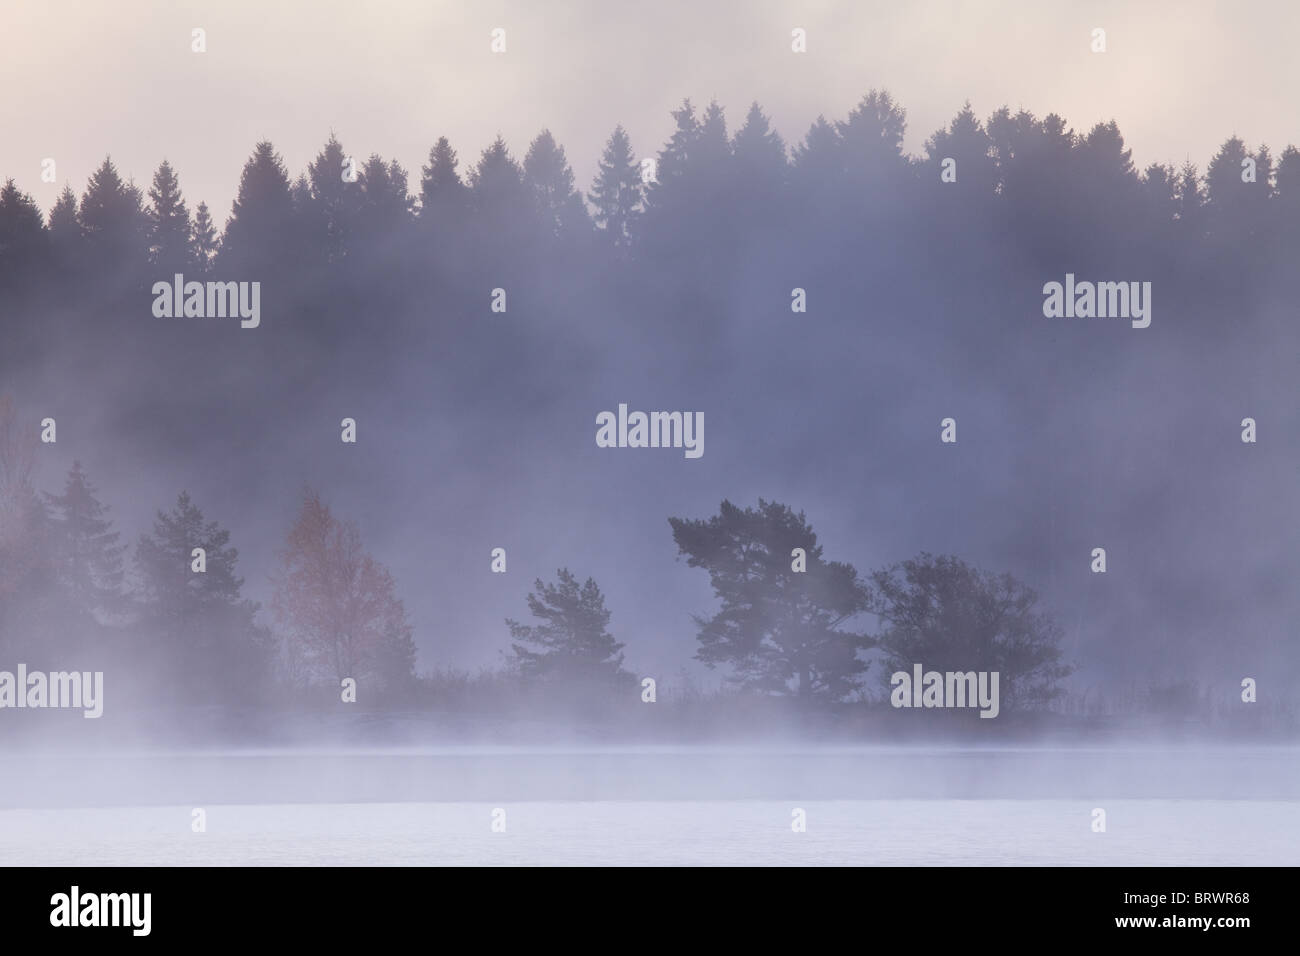 Early morning mist after a frosty night in the lake Vansjø, Østfold fylke, Norway. Stock Foto